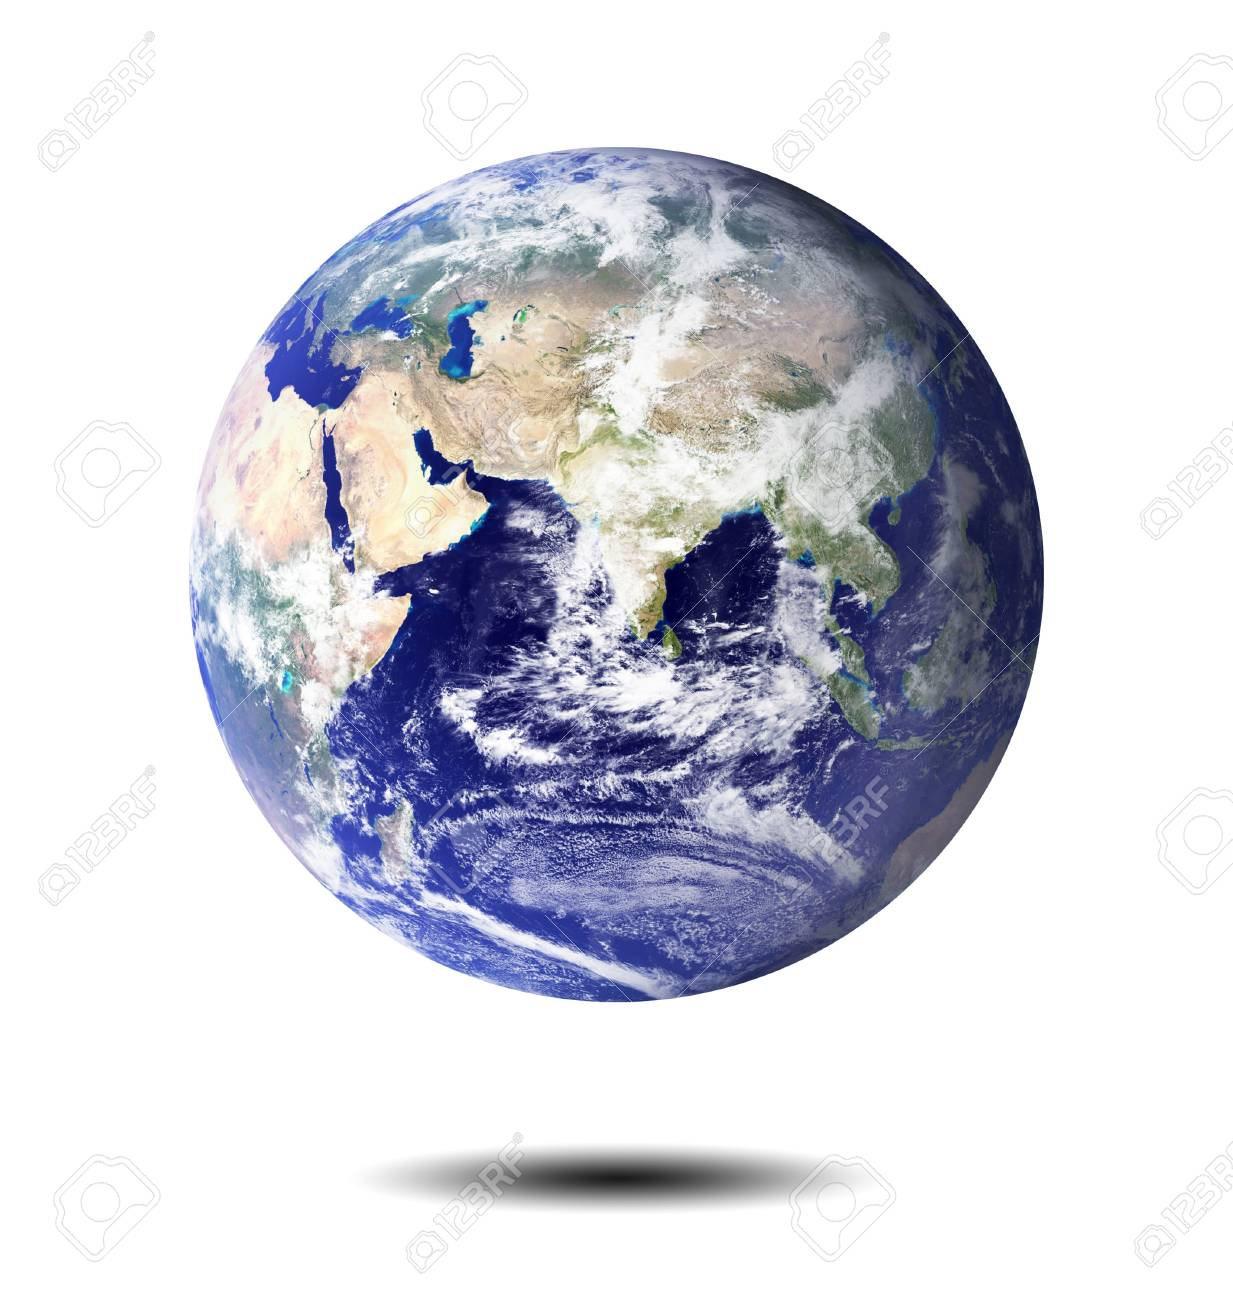 earth image for conceptual usage. Stock Photo - 10598939